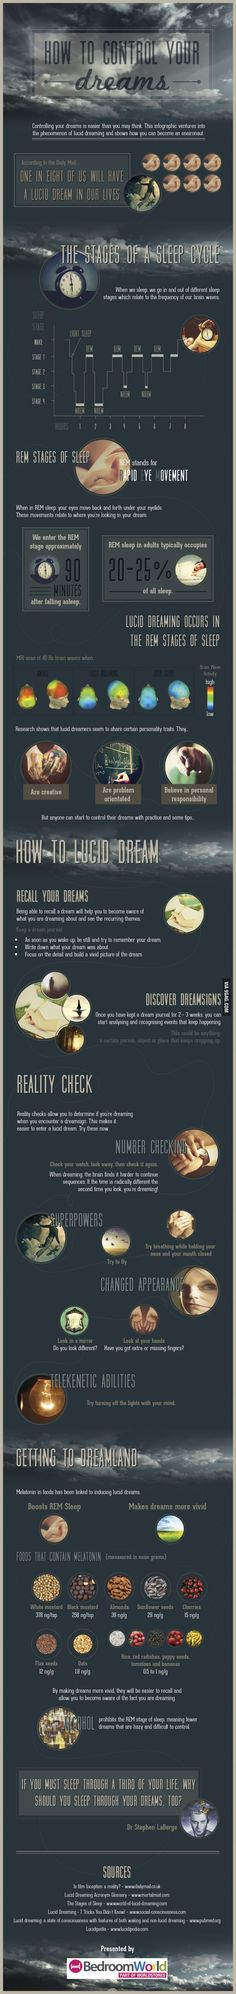 Lucid dreaming: I was really into this a number of years ago. Thinking about giving it a go again.